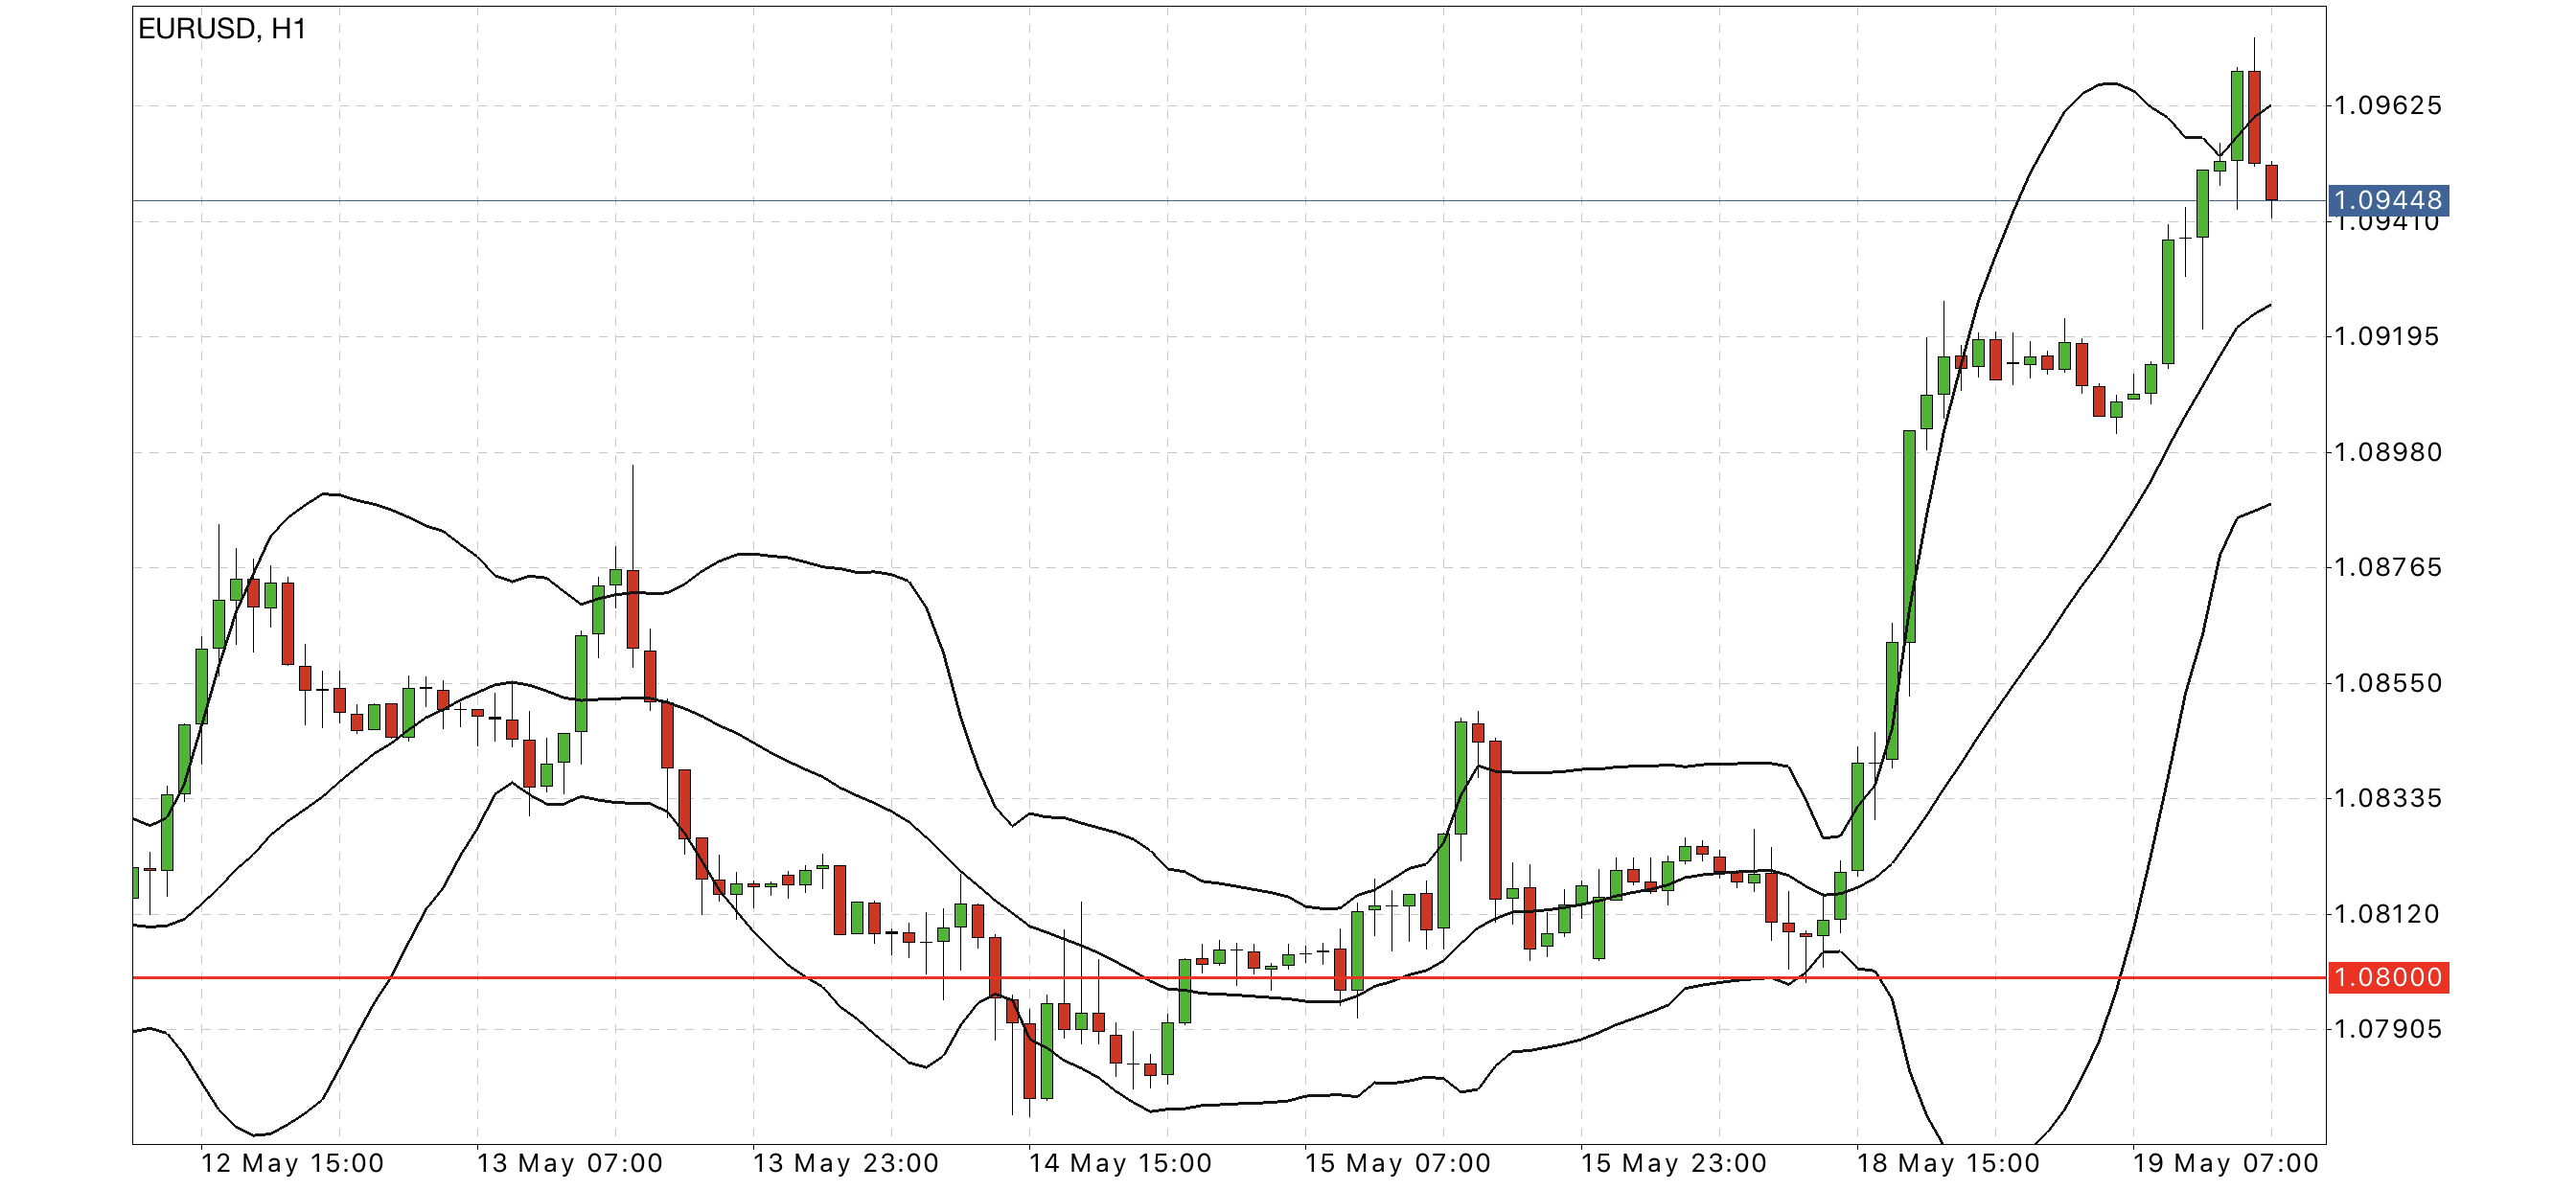 eurusd hourly chart forex forecast